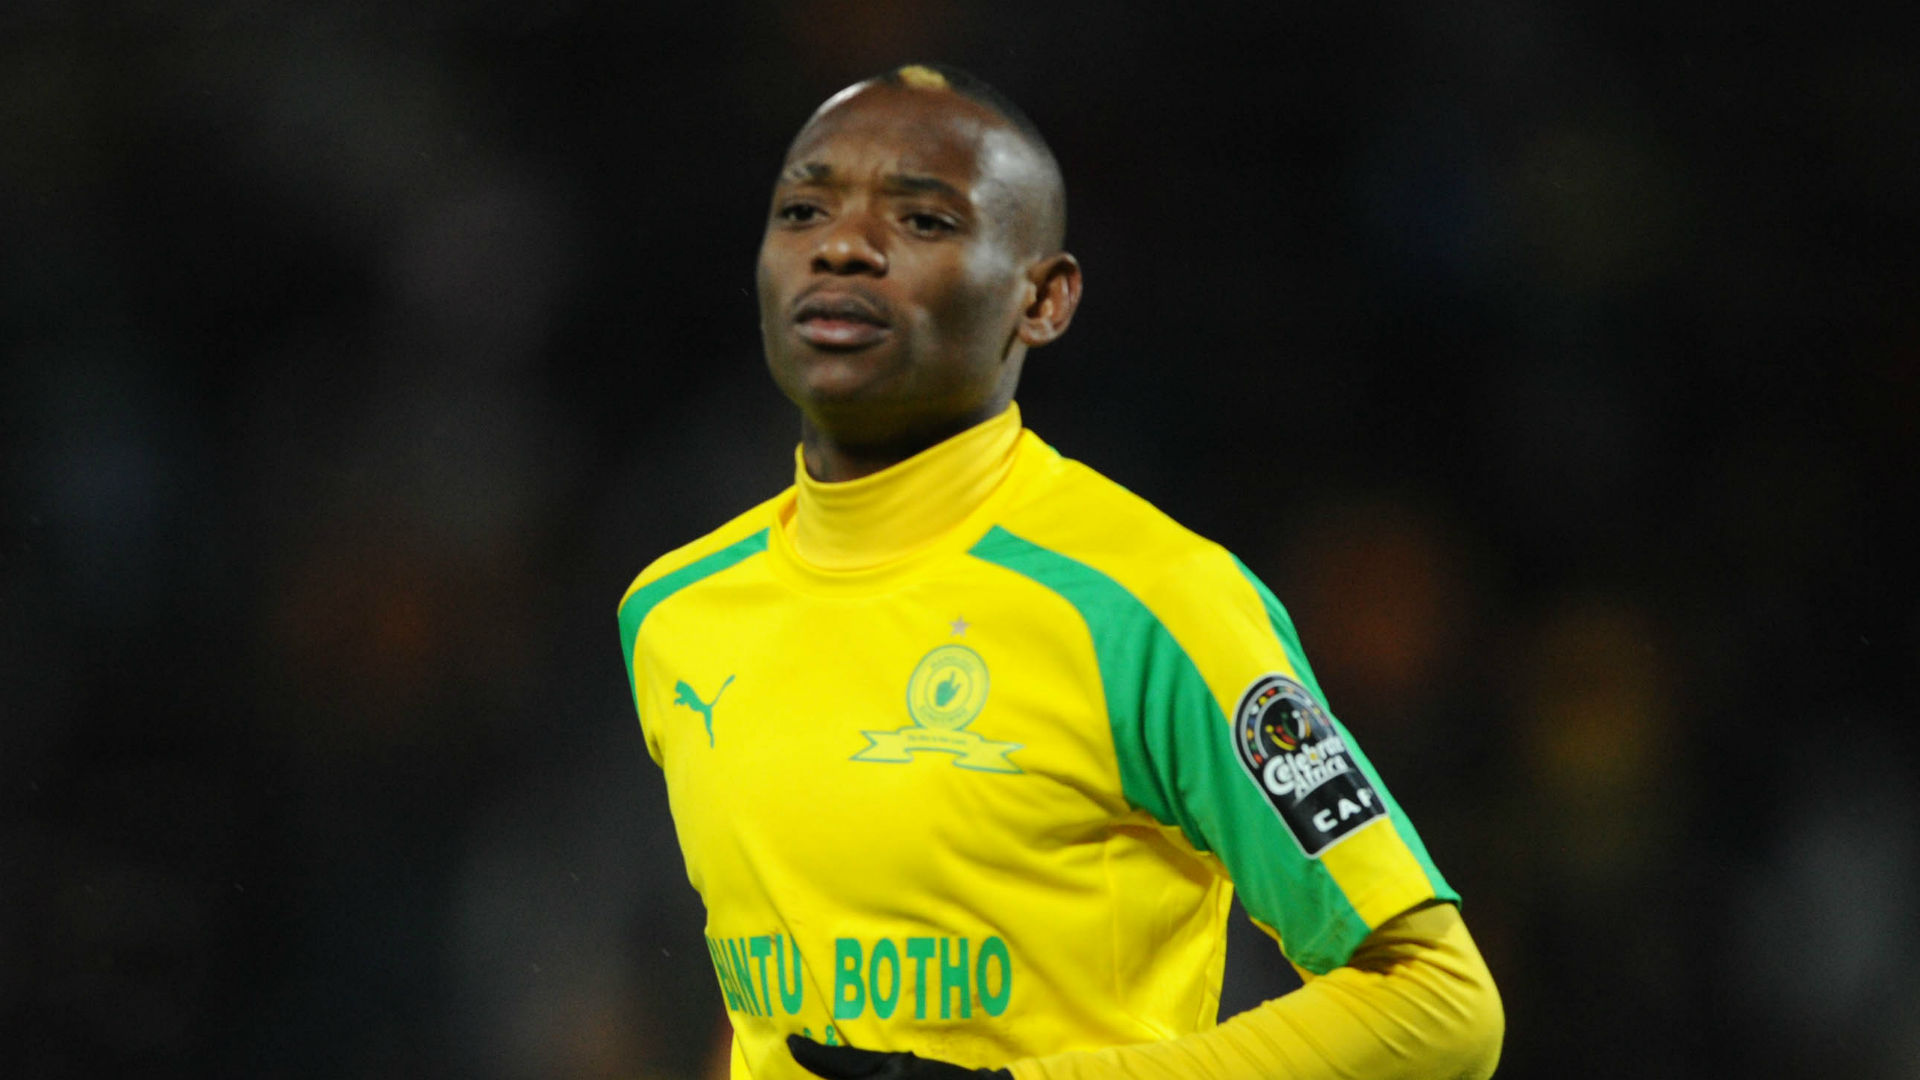 Celtic will come back for Coetzee - Mosimane